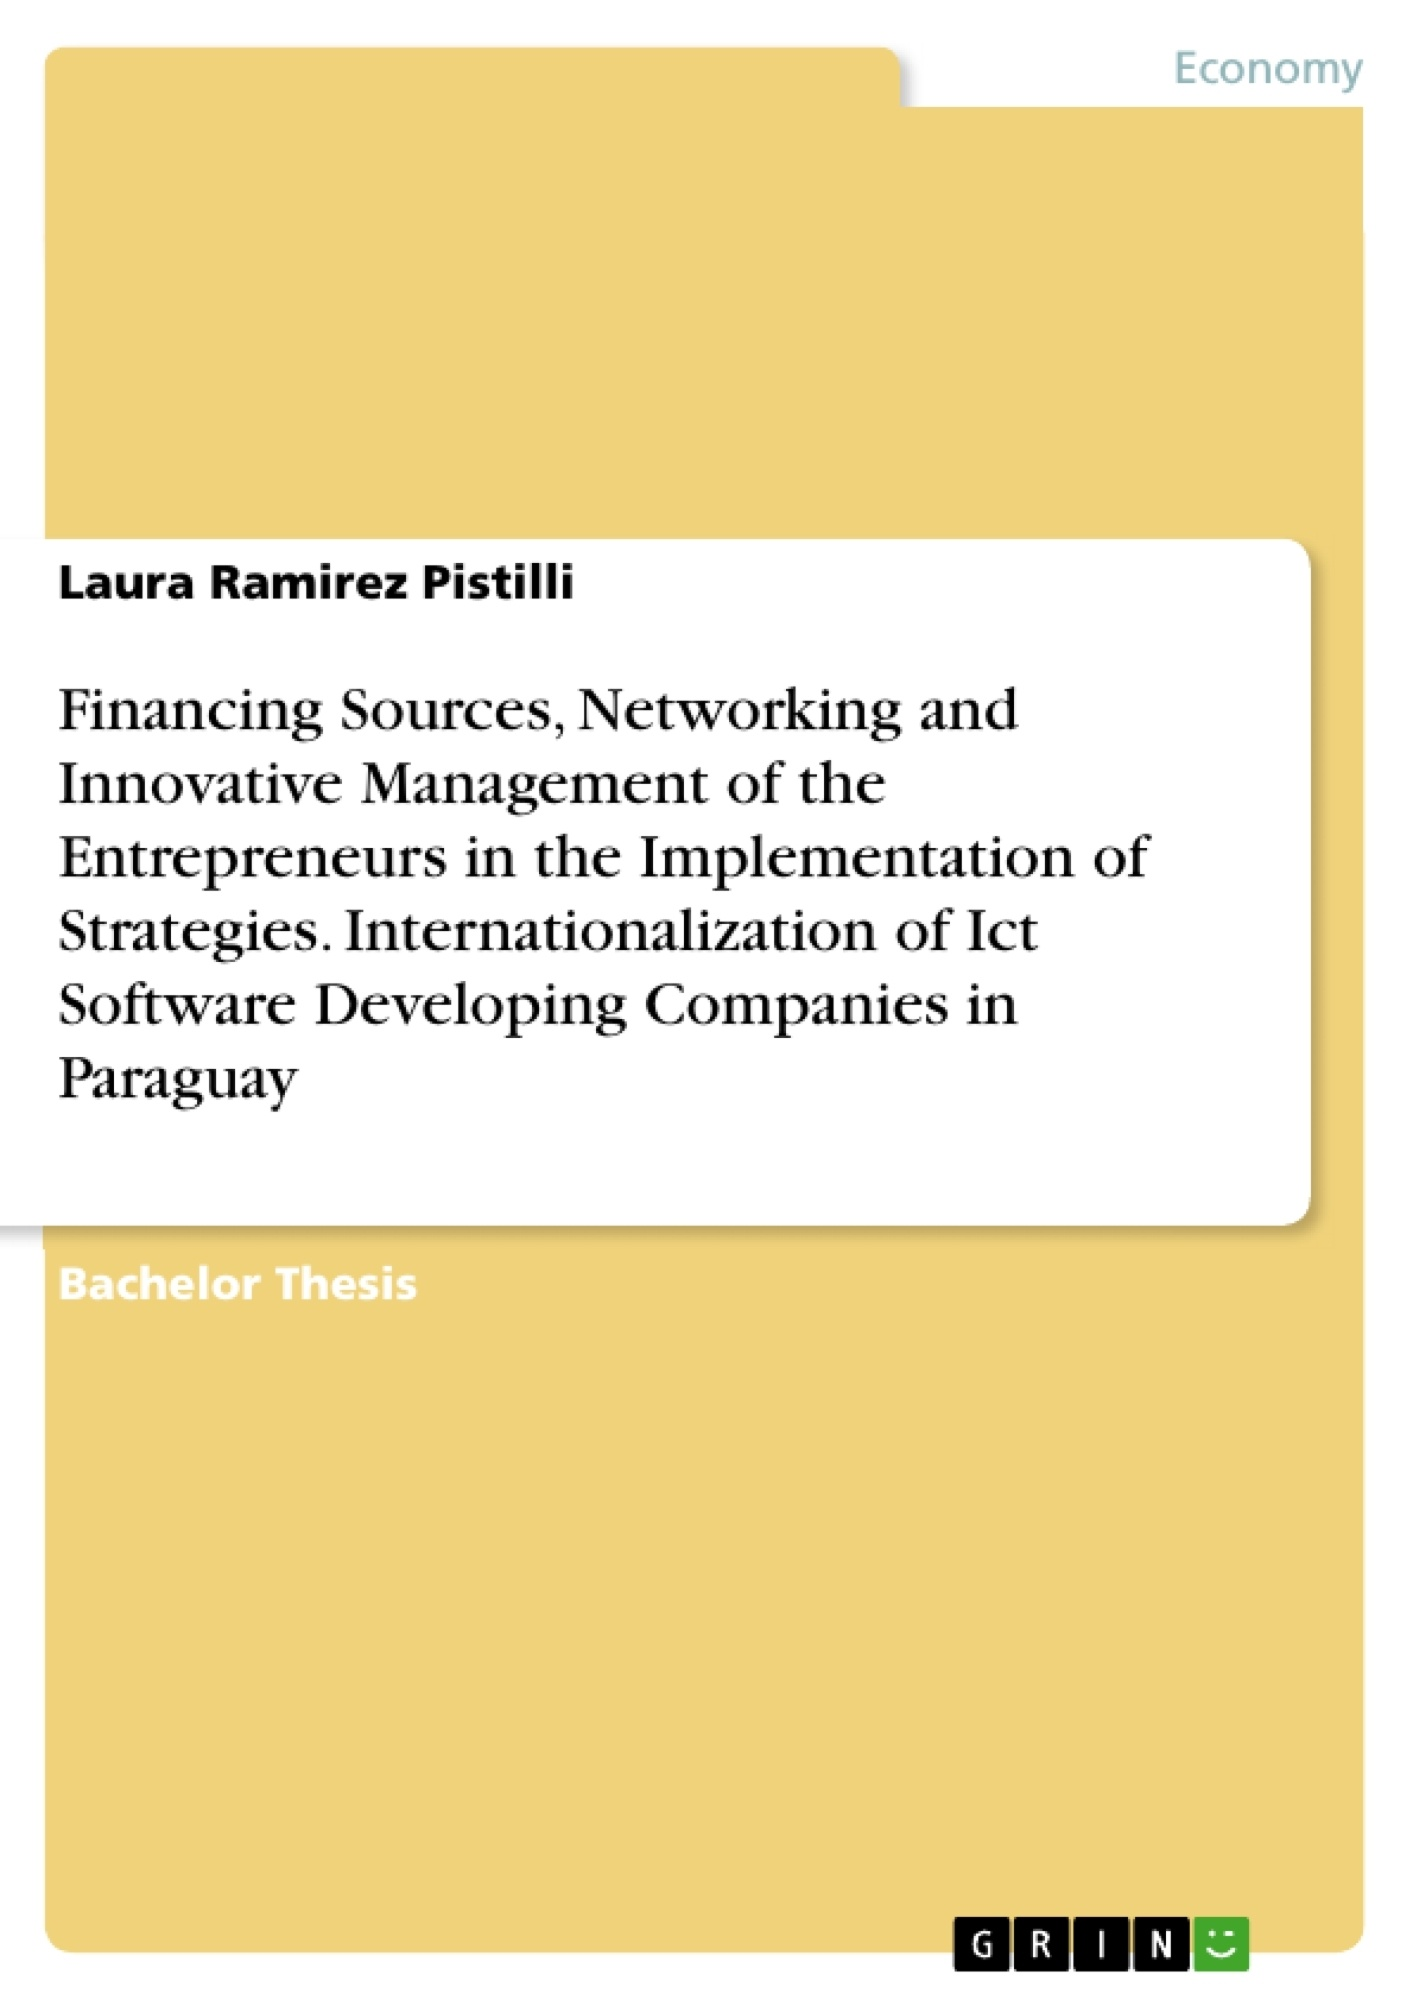 Title: Financing Sources, Networking and Innovative Management of the Entrepreneurs in the Implementation of Strategies. Internationalization of Ict Software Developing Companies in Paraguay